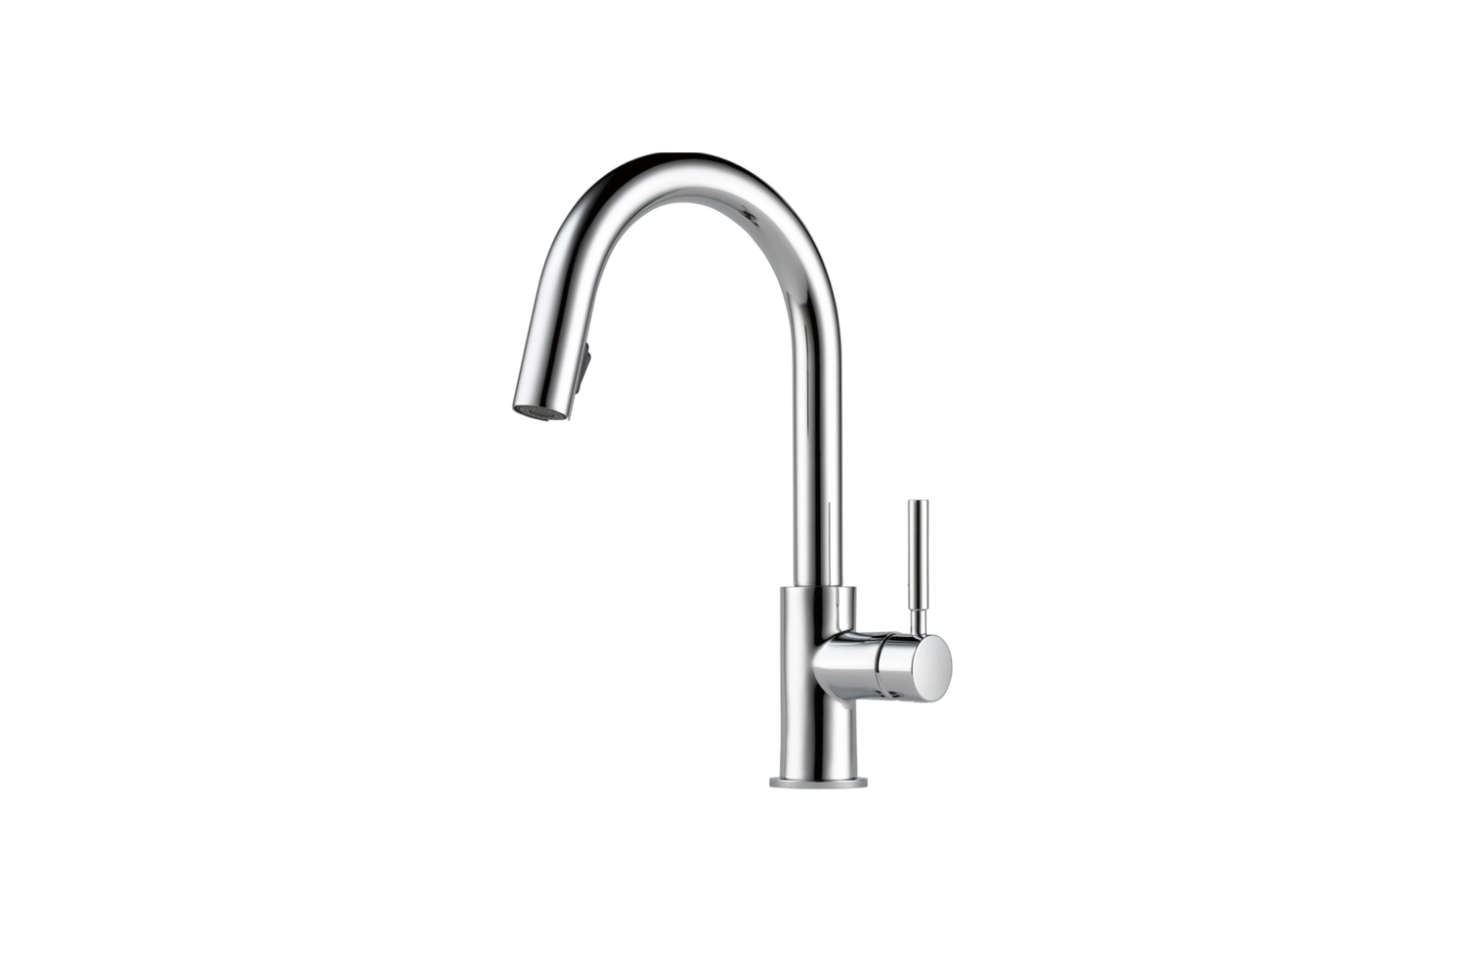 The Brizo Solna Kitchen Faucet (630LF) comes in polished chrome, matte black, and brilliance stainless; $375.84 at Quality Bath.